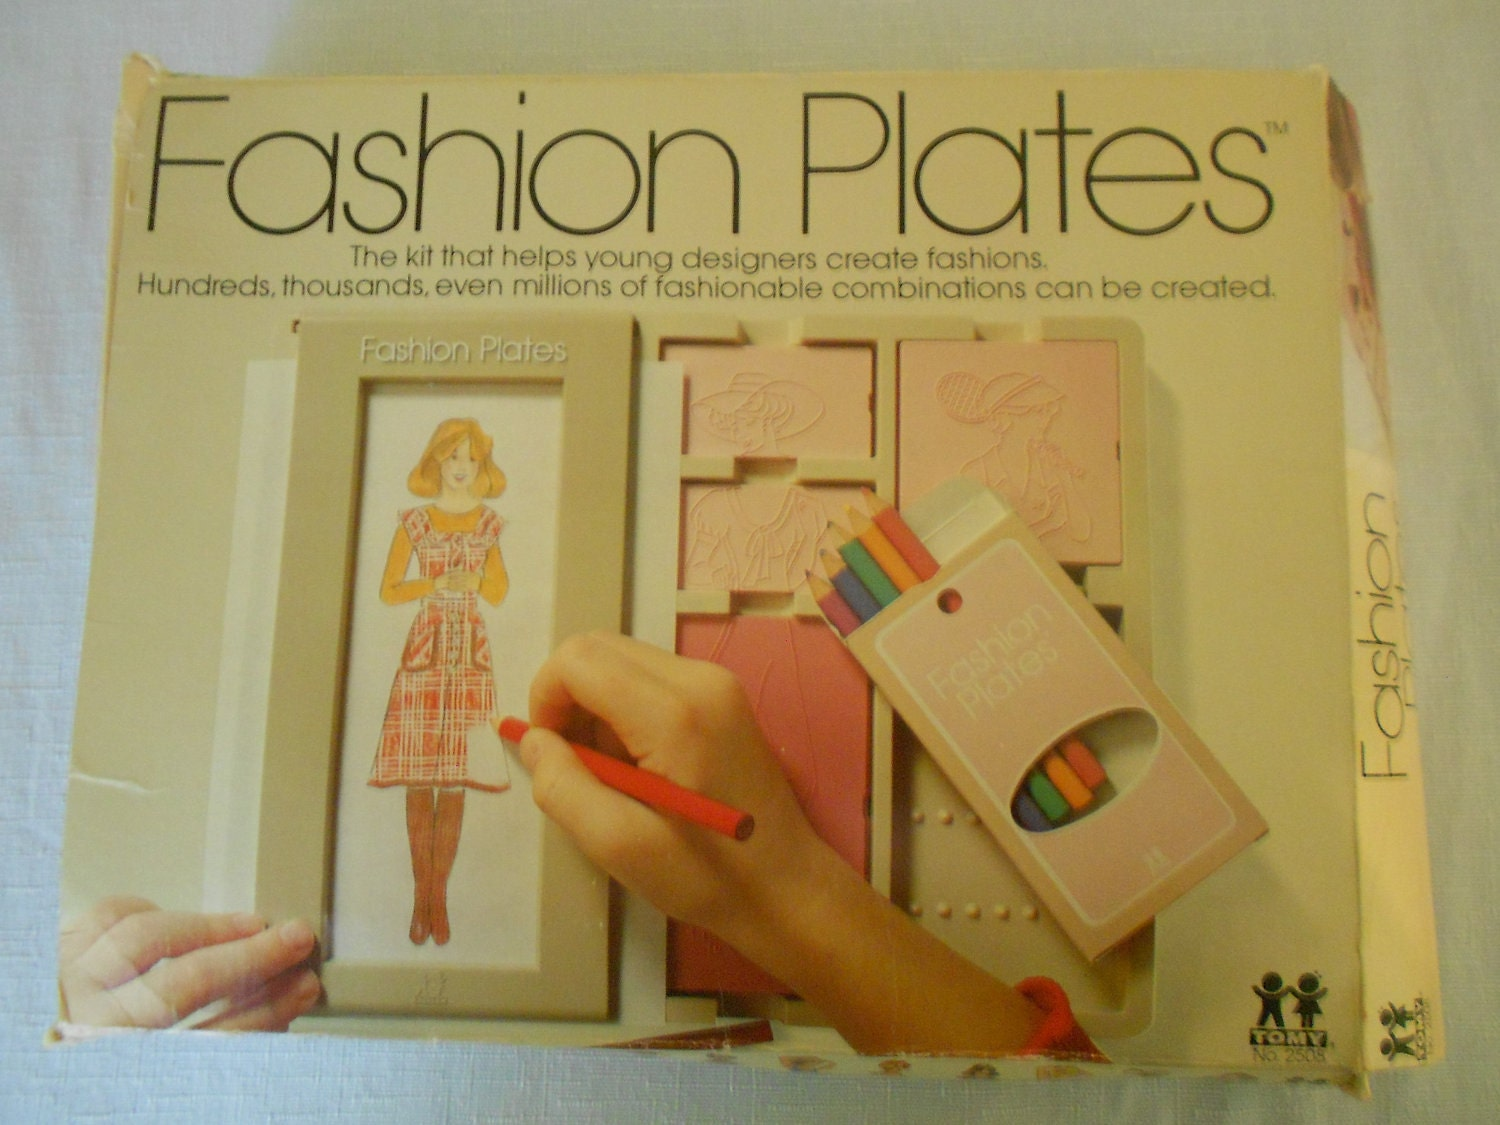 Toys From 1970s And 1980s Fashion Plates Toy 1970s Zoom